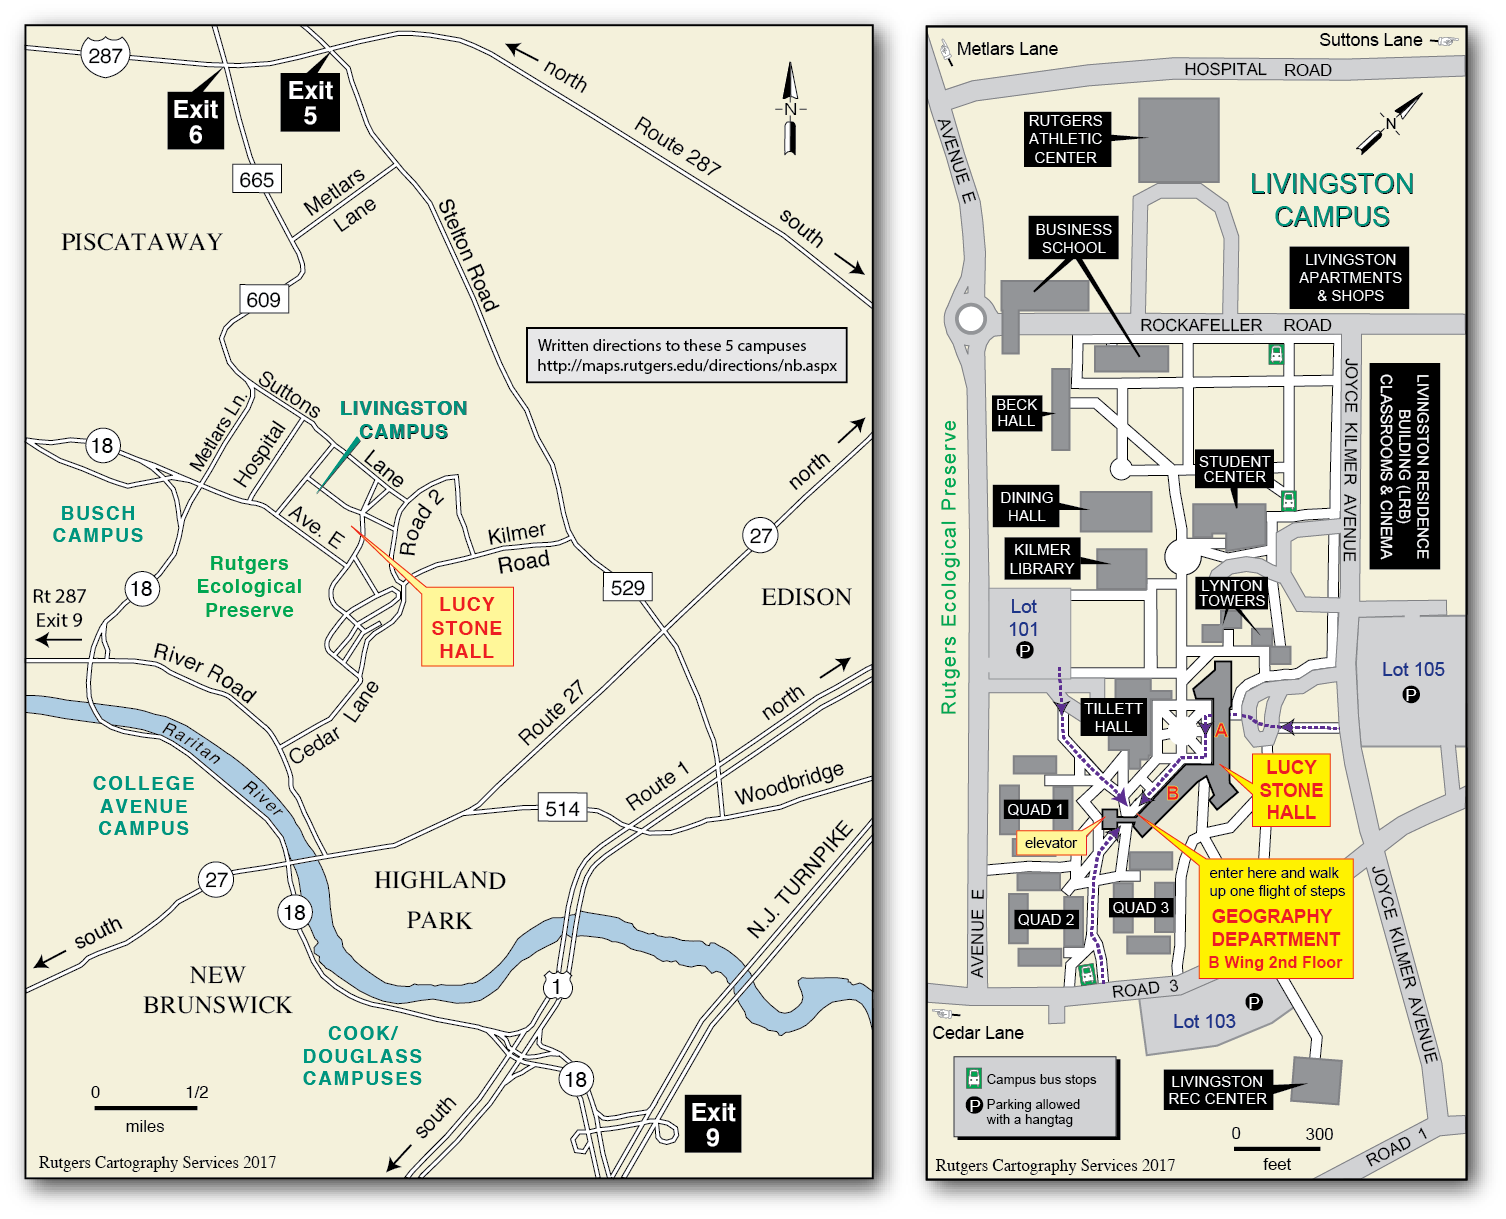 Rutgers cartography lab download a copy of the livingston campus and vicinity map below pdf file ccuart Images